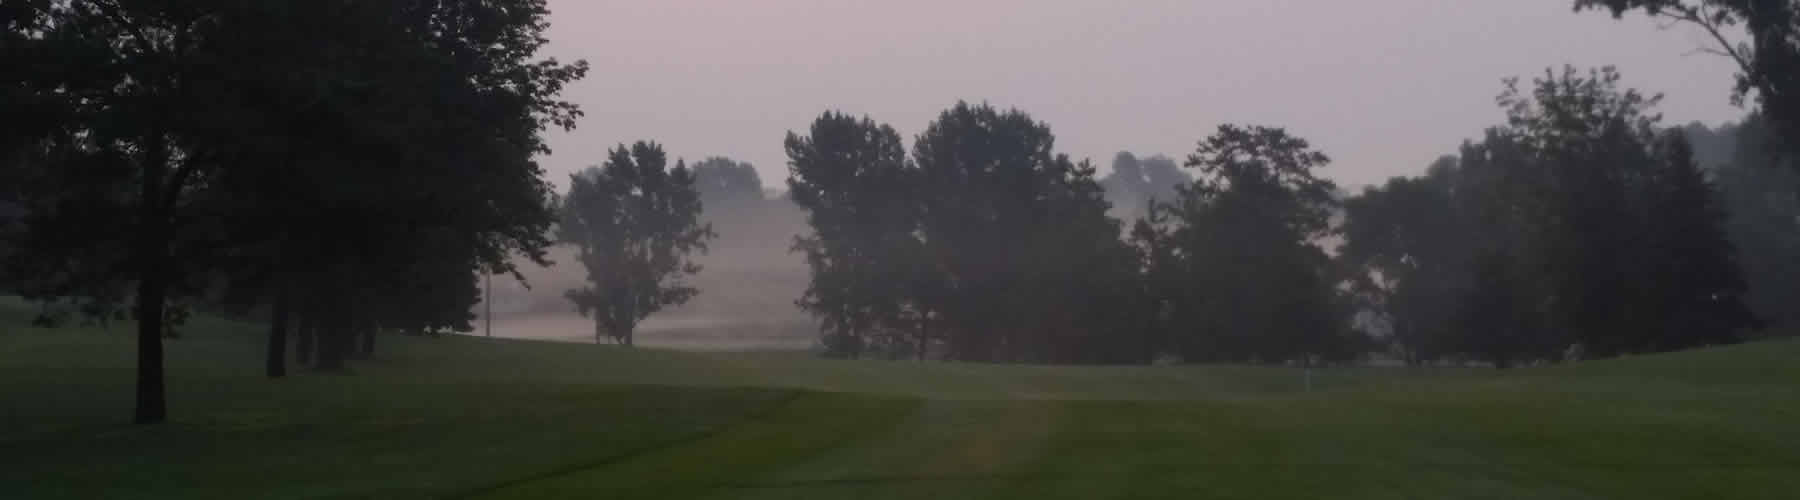 The Pine to Palm Golf Tournament is held in Detroit Lakes, Minnesota.